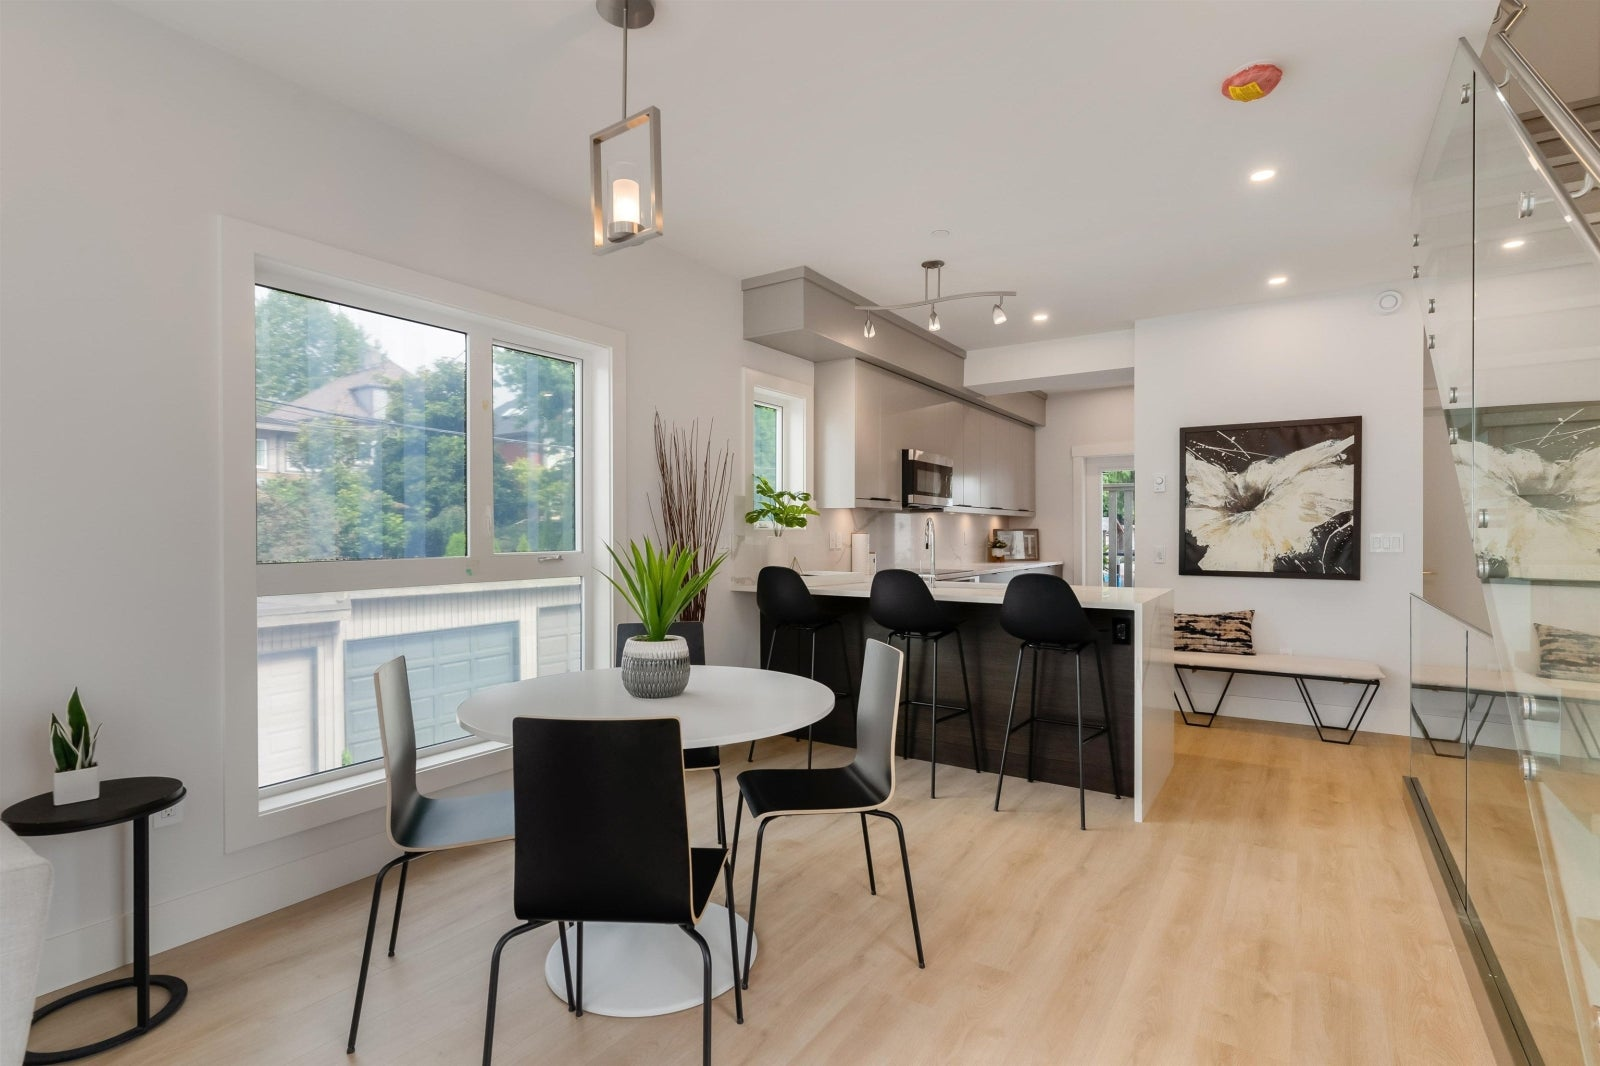 TH 1 230-232 E 8TH STREET - Central Lonsdale Townhouse for sale, 3 Bedrooms (R2610807) #6